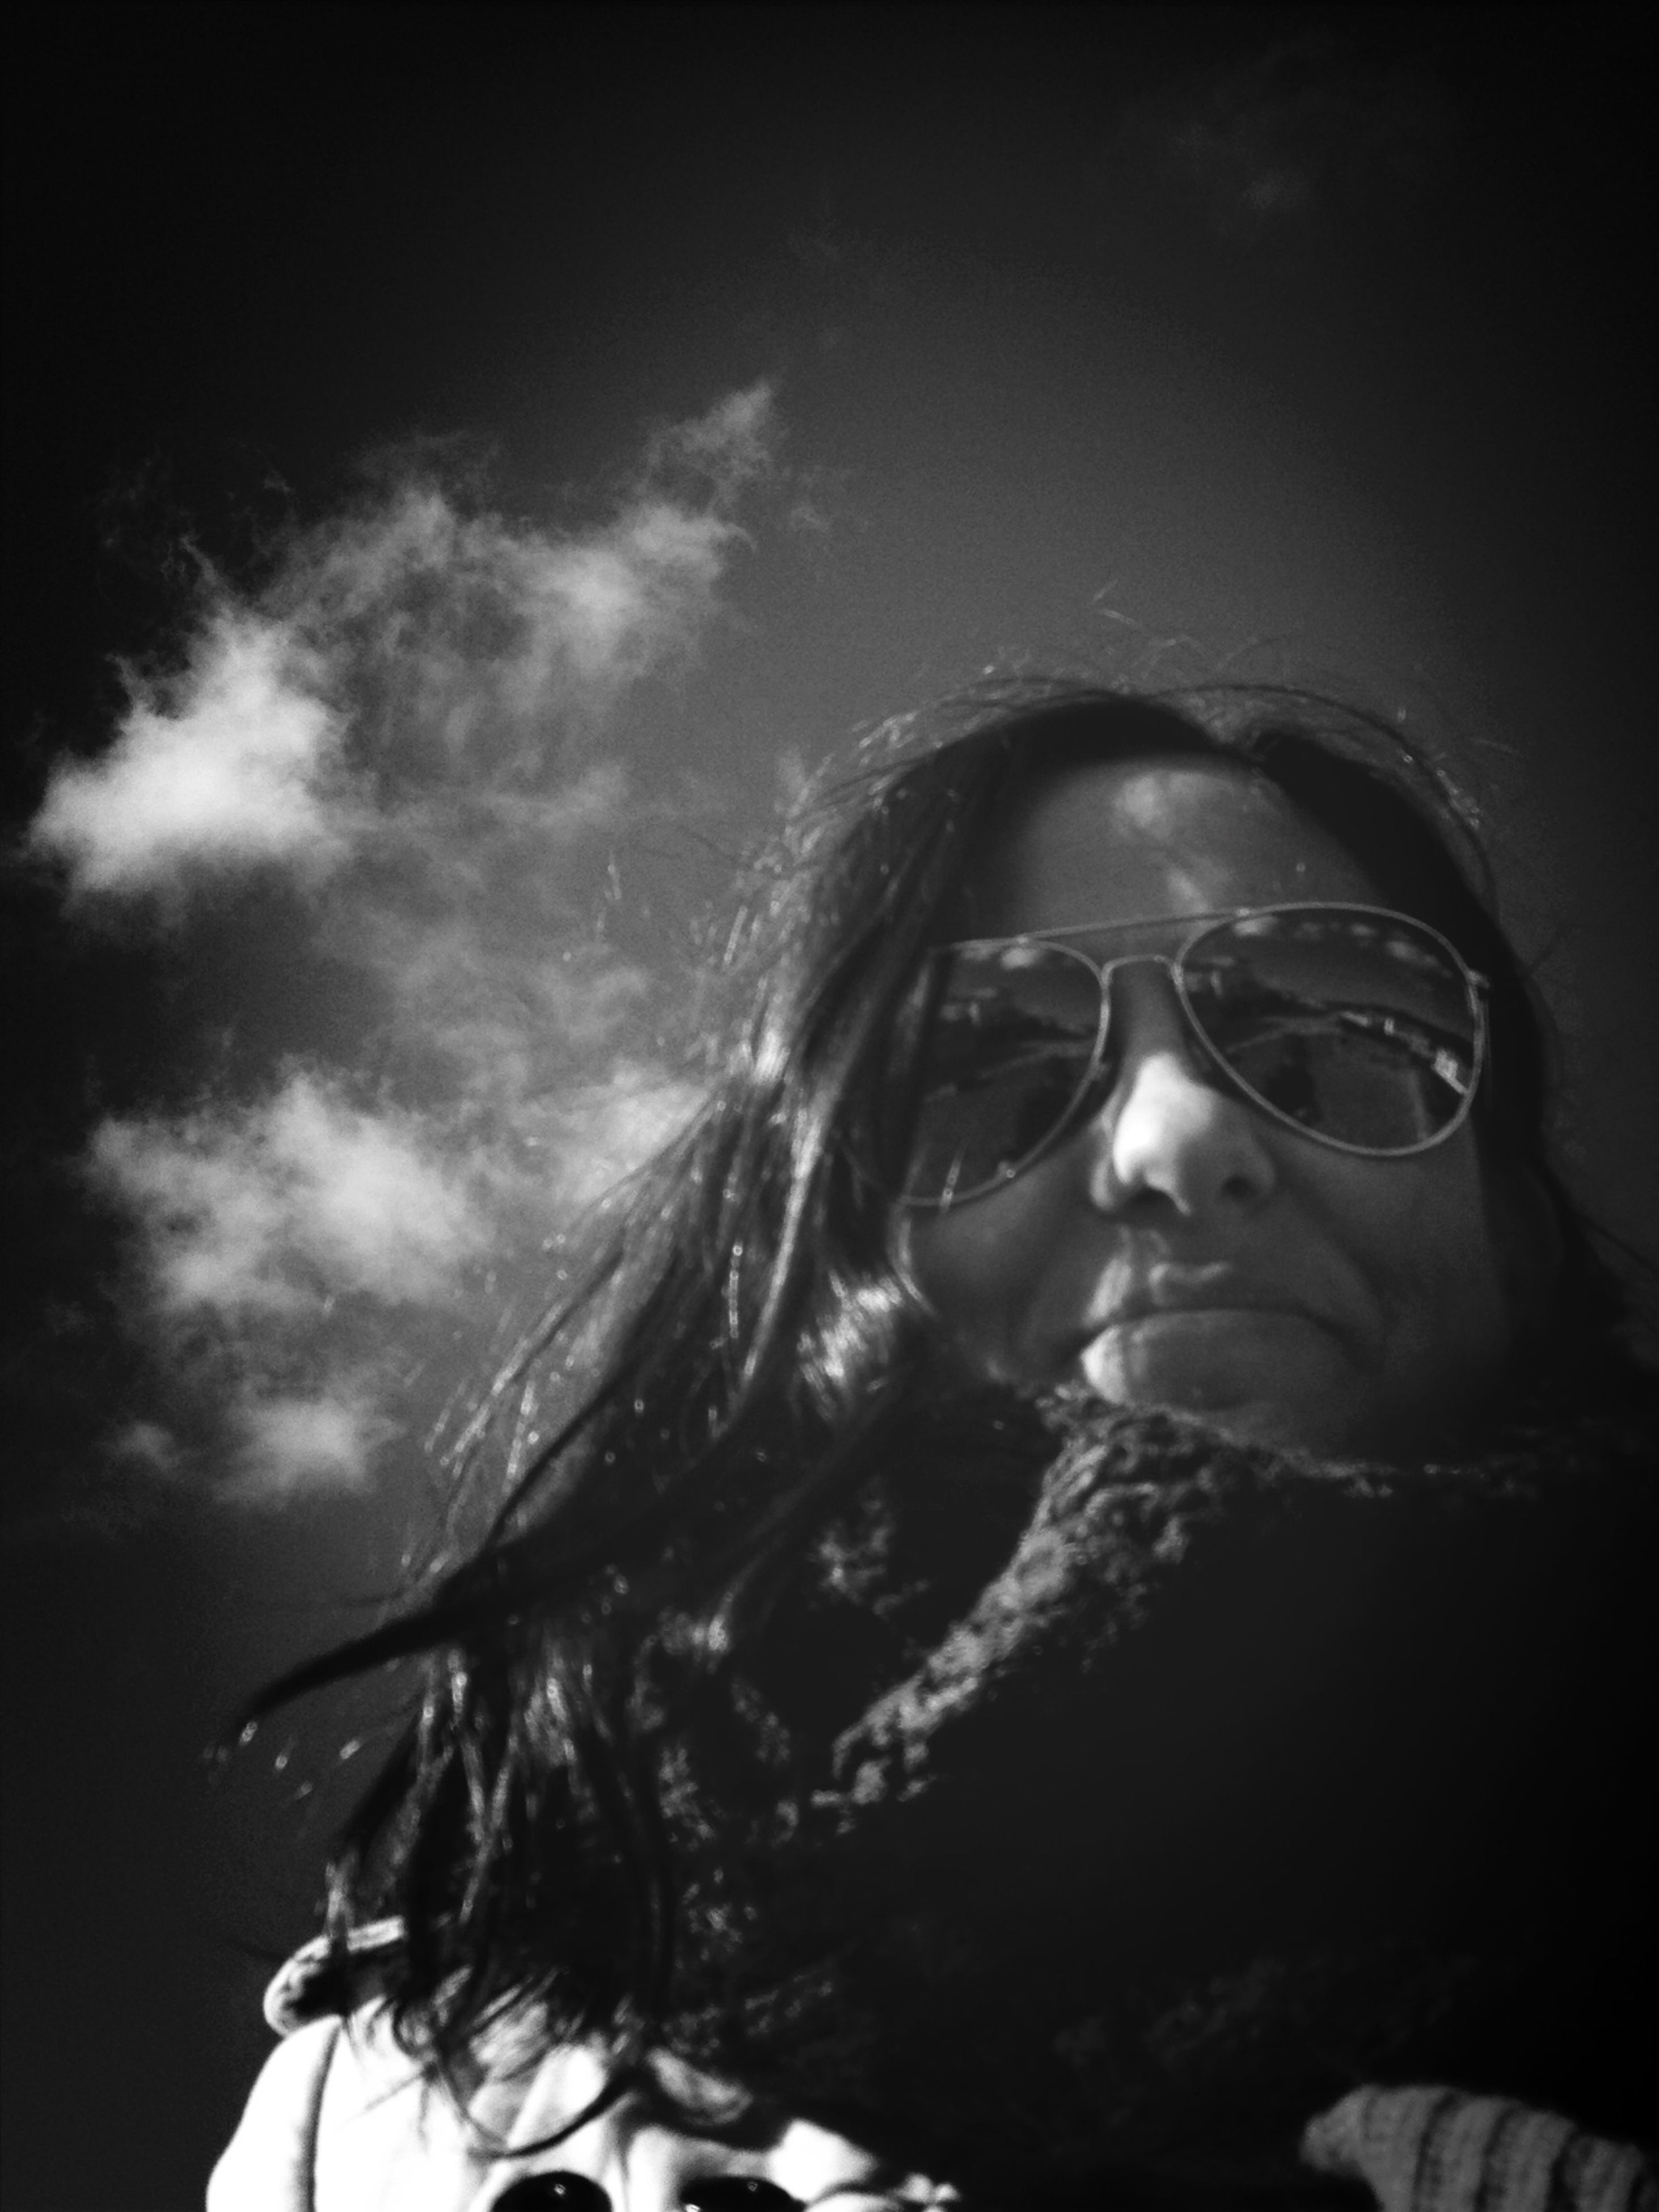 young adult, portrait, looking at camera, headshot, person, lifestyles, young women, front view, leisure activity, head and shoulders, sky, smiling, close-up, sunglasses, long hair, mid adult